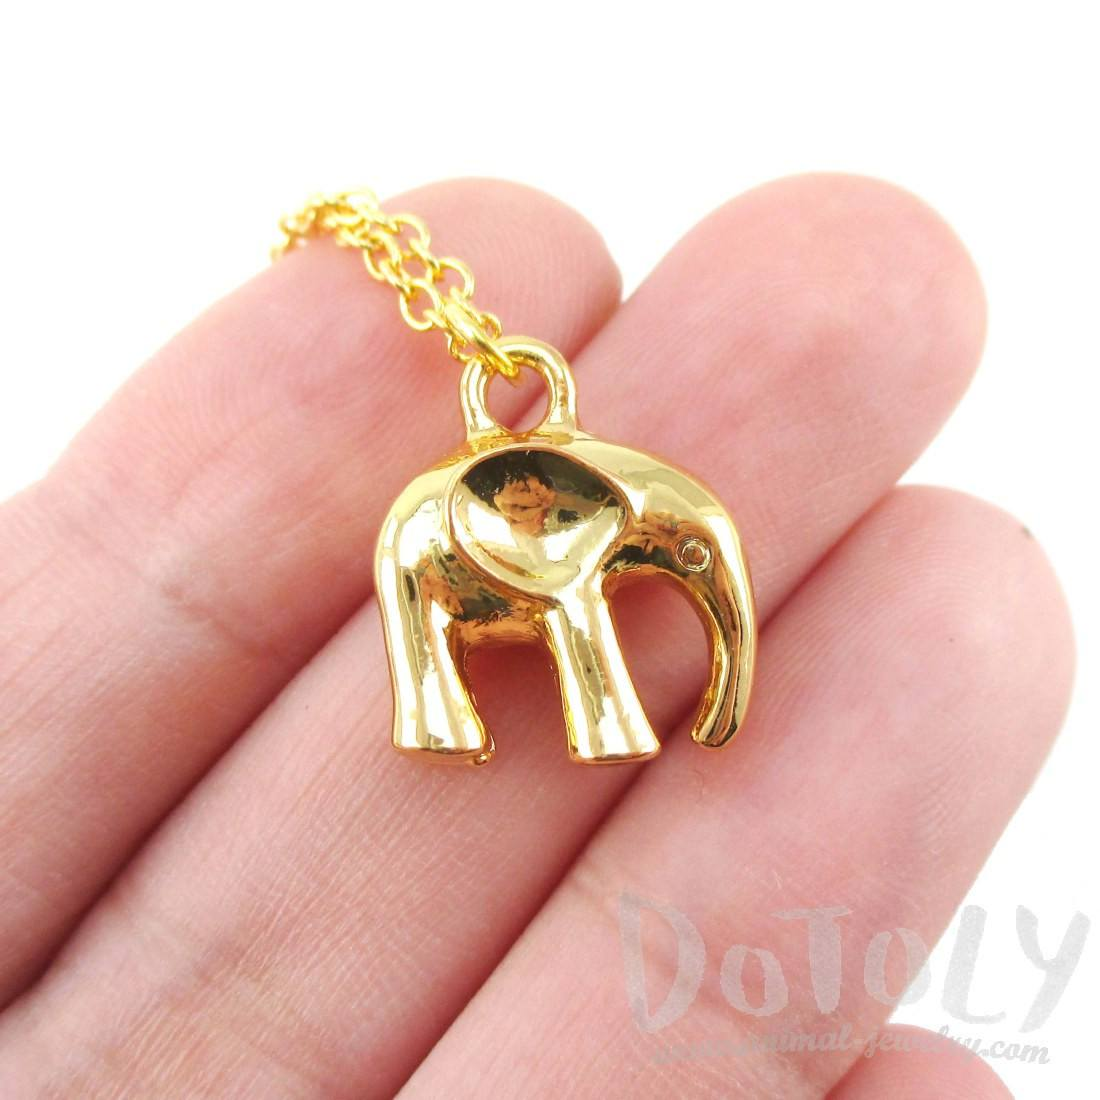 3D Standing Elephant Shaped Pendant Necklace in Gold